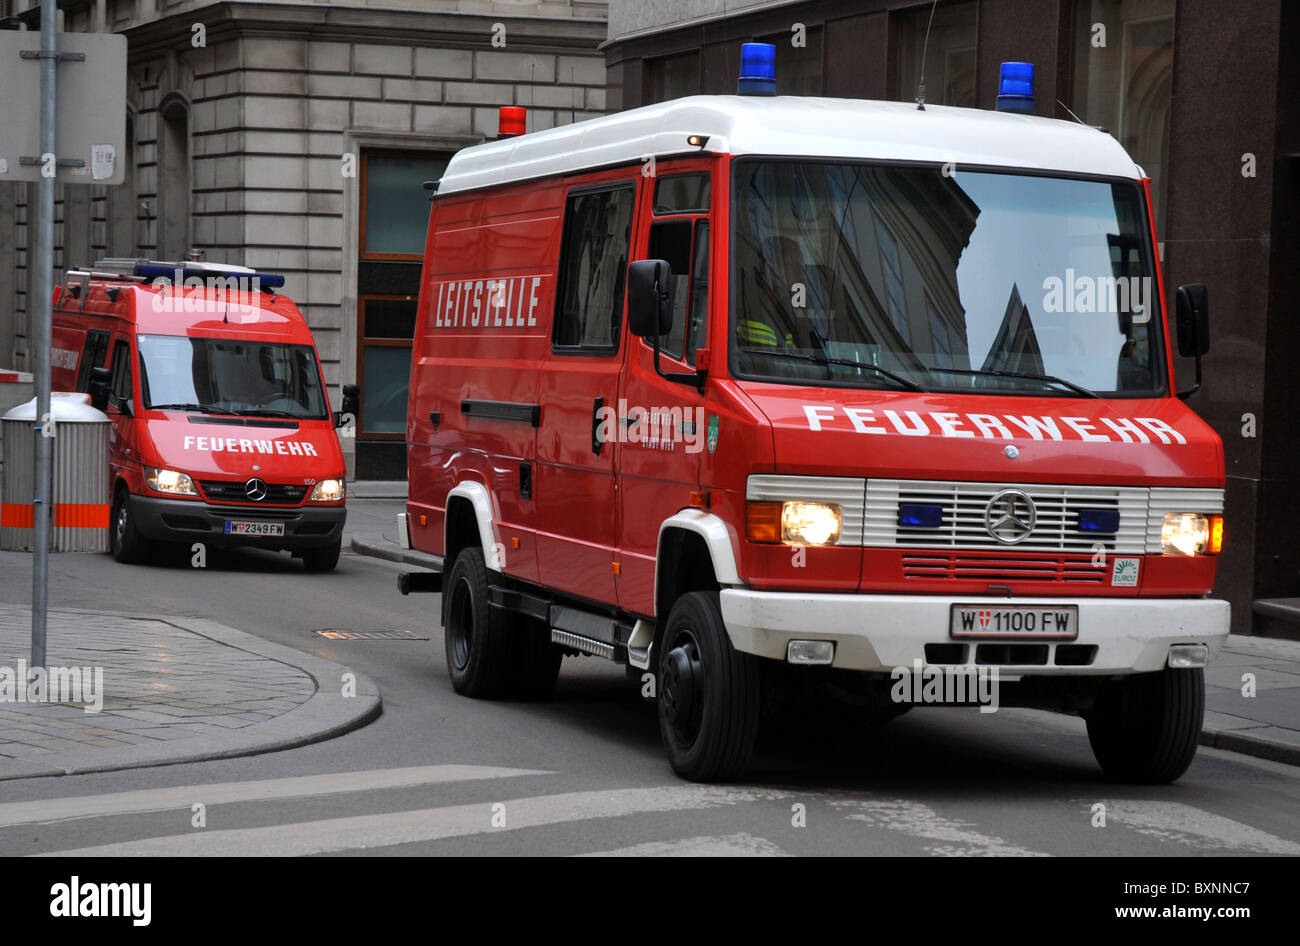 Fire emergency vehicles, Vienna. Austria, Europe - Stock Image